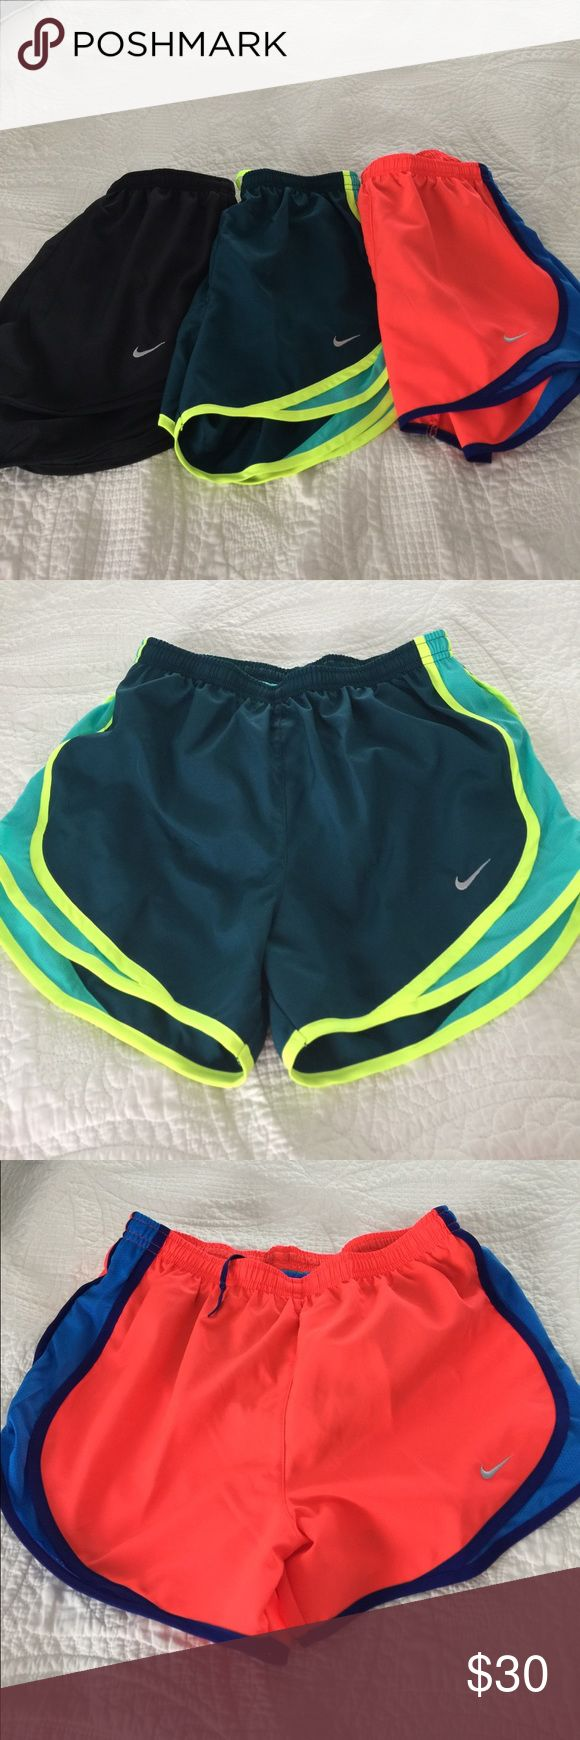 NWOT Nike Bundle Running Shorts W/ Mesh Underwear NWOT Nike Bundle Running Shorts. Bought these at the Nike Store and popped tags without trying on. Too big..Never worn Cute colors for the summer. Nike Shorts